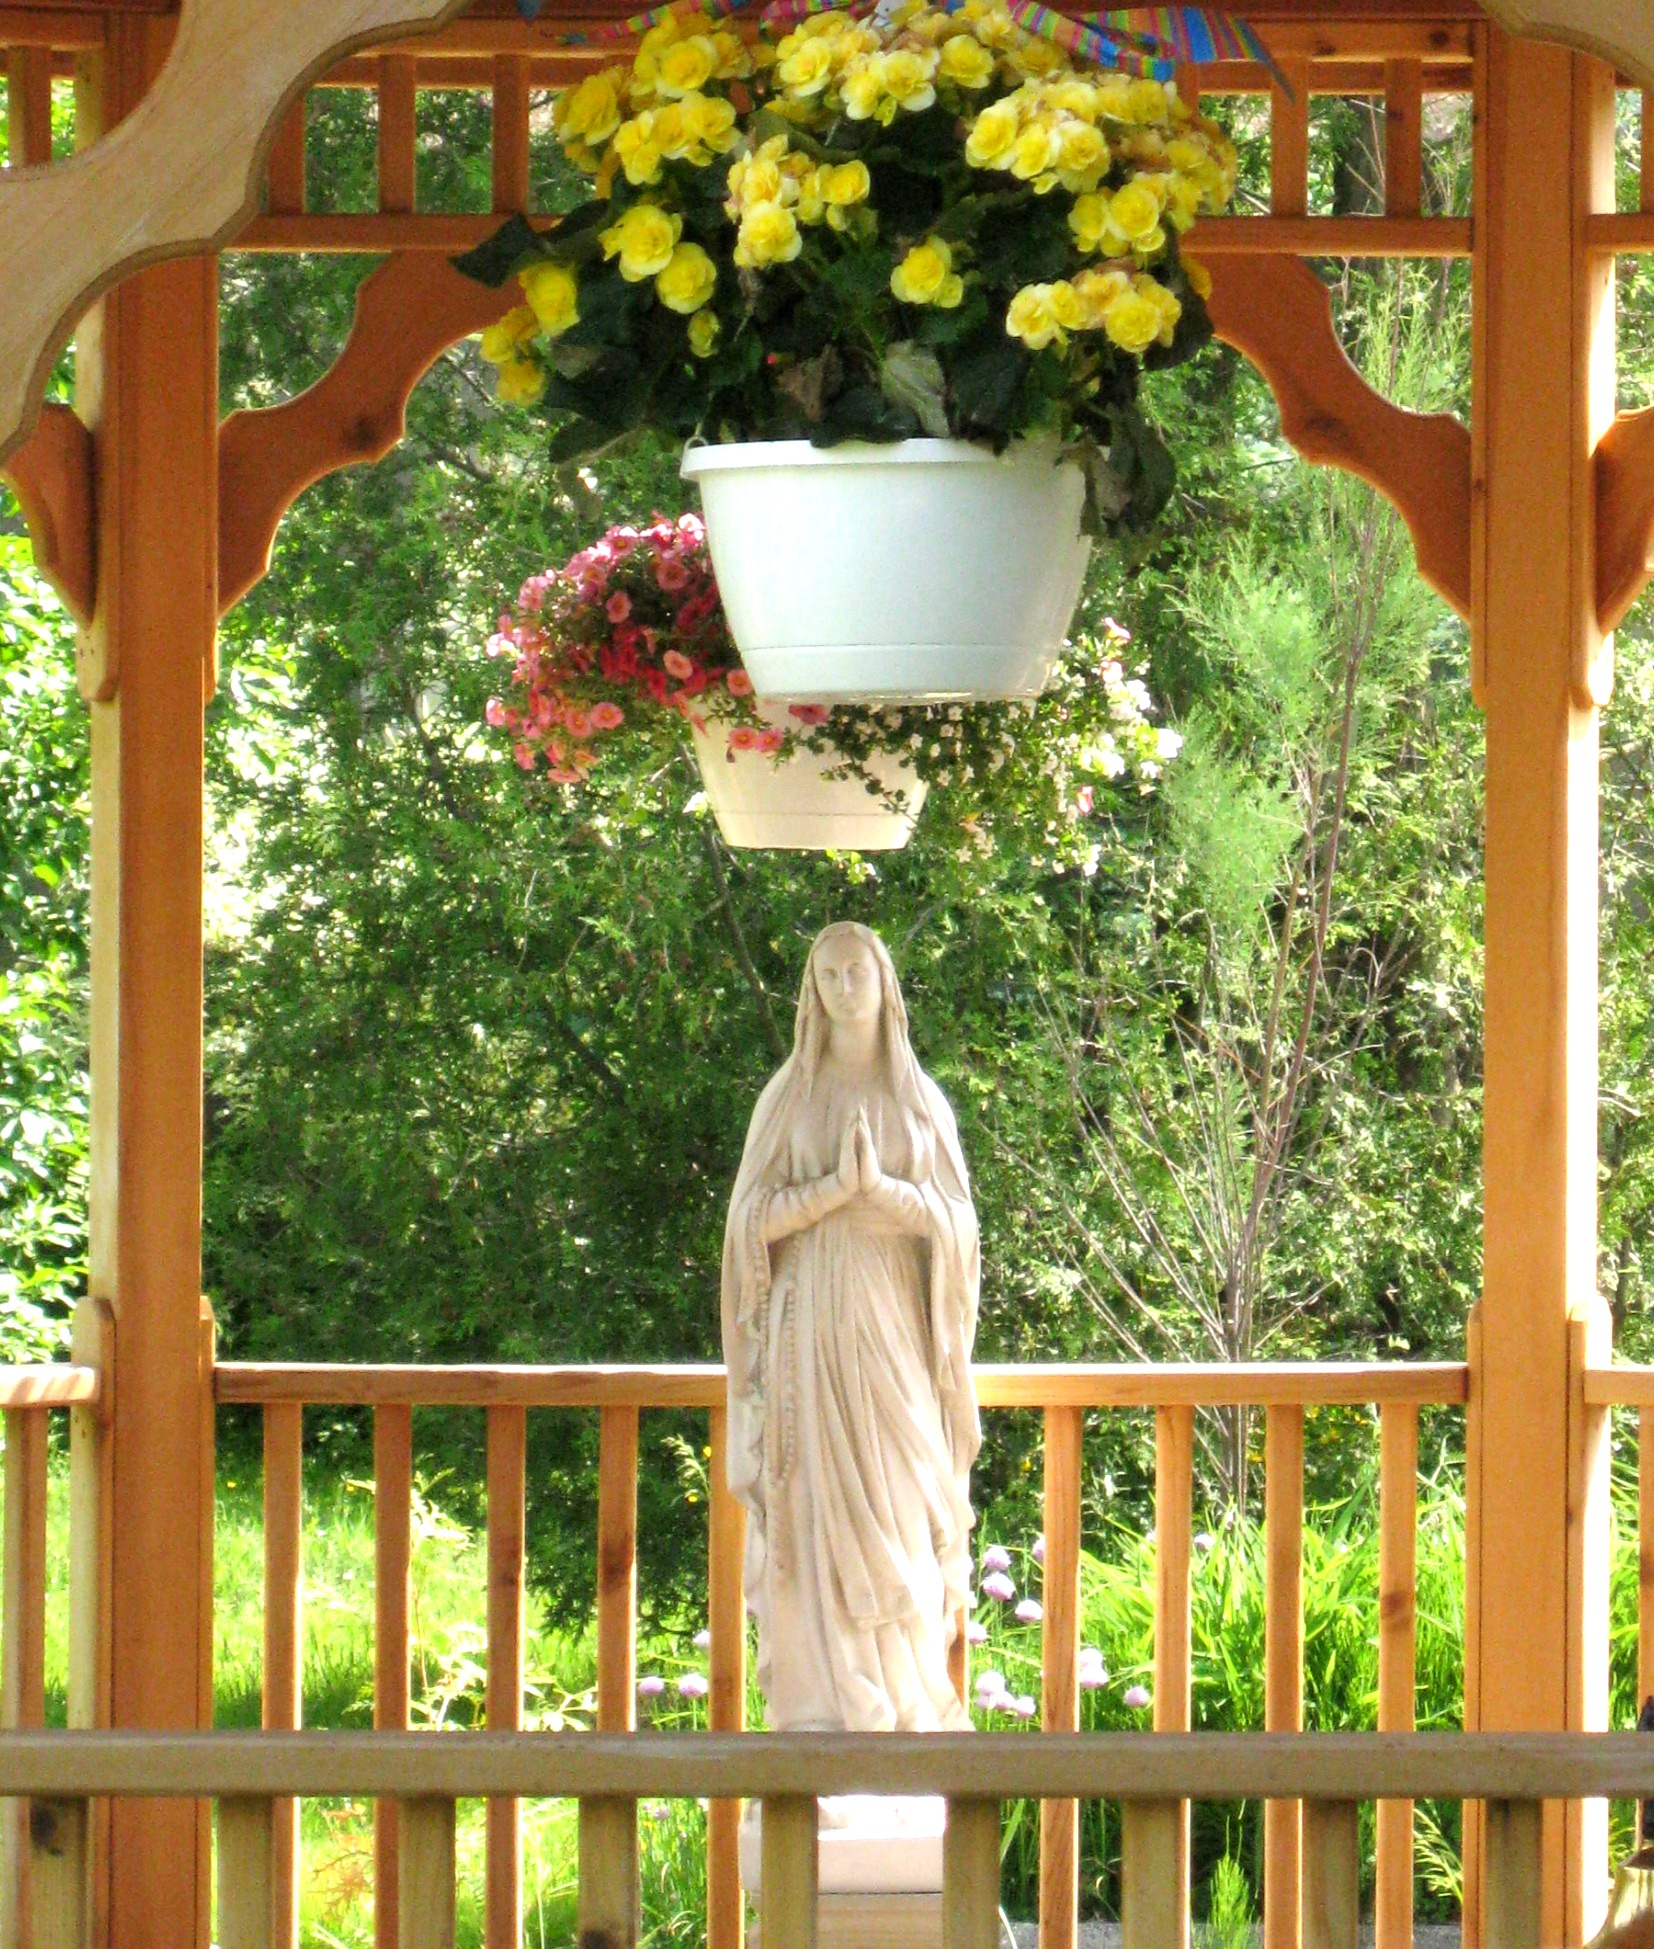 Our Lady of Lourdes in Gazebo